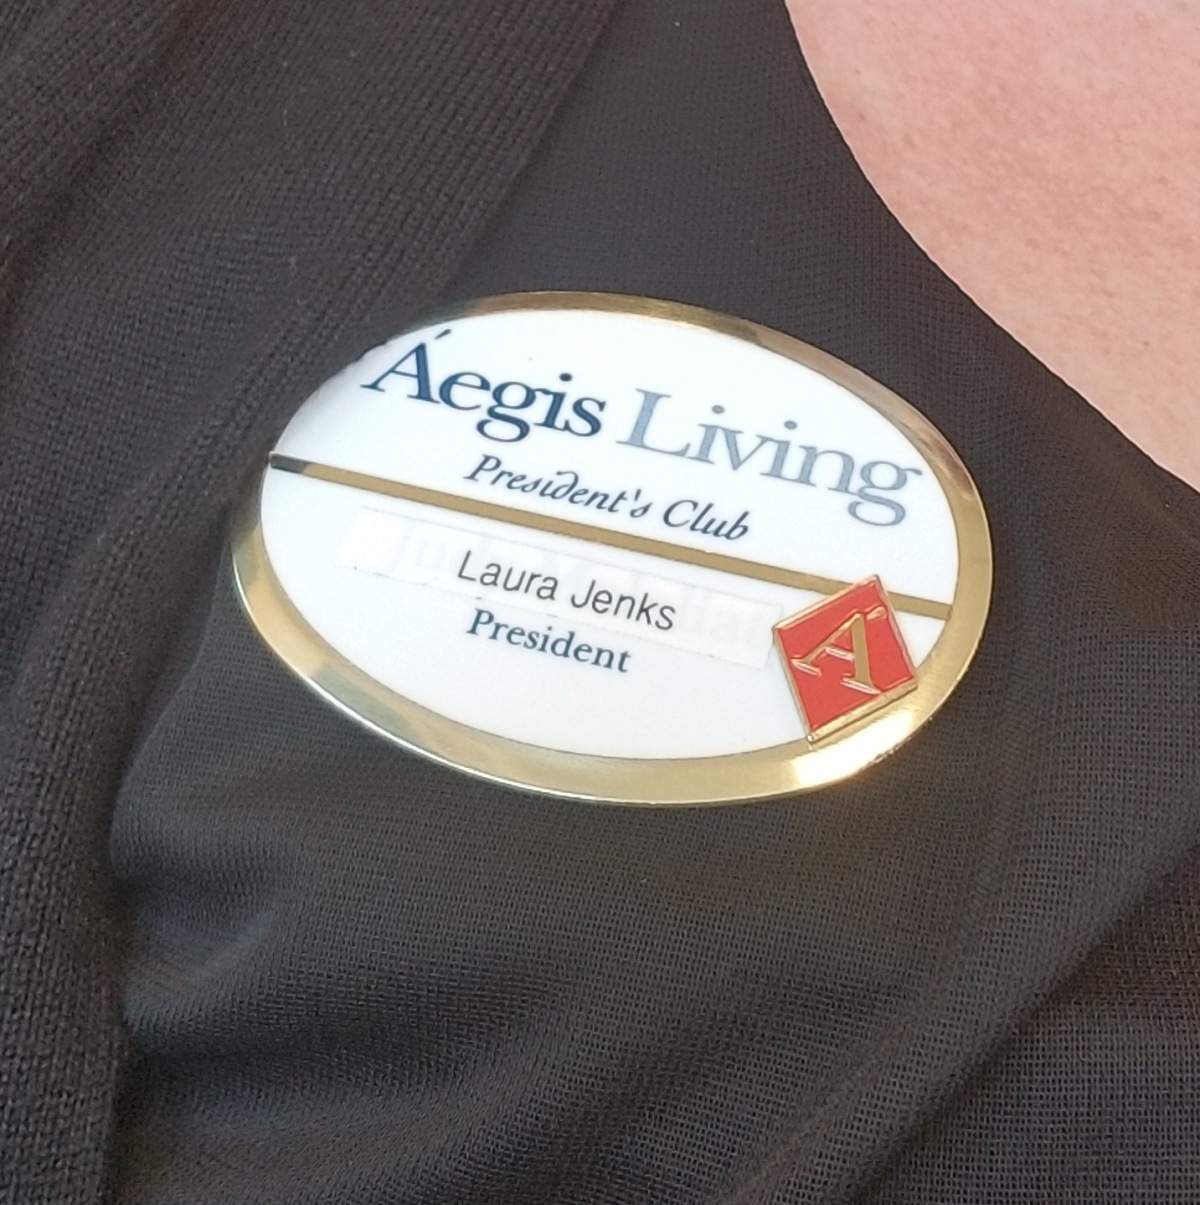 What I Learned as President of Aegis Living for a Day